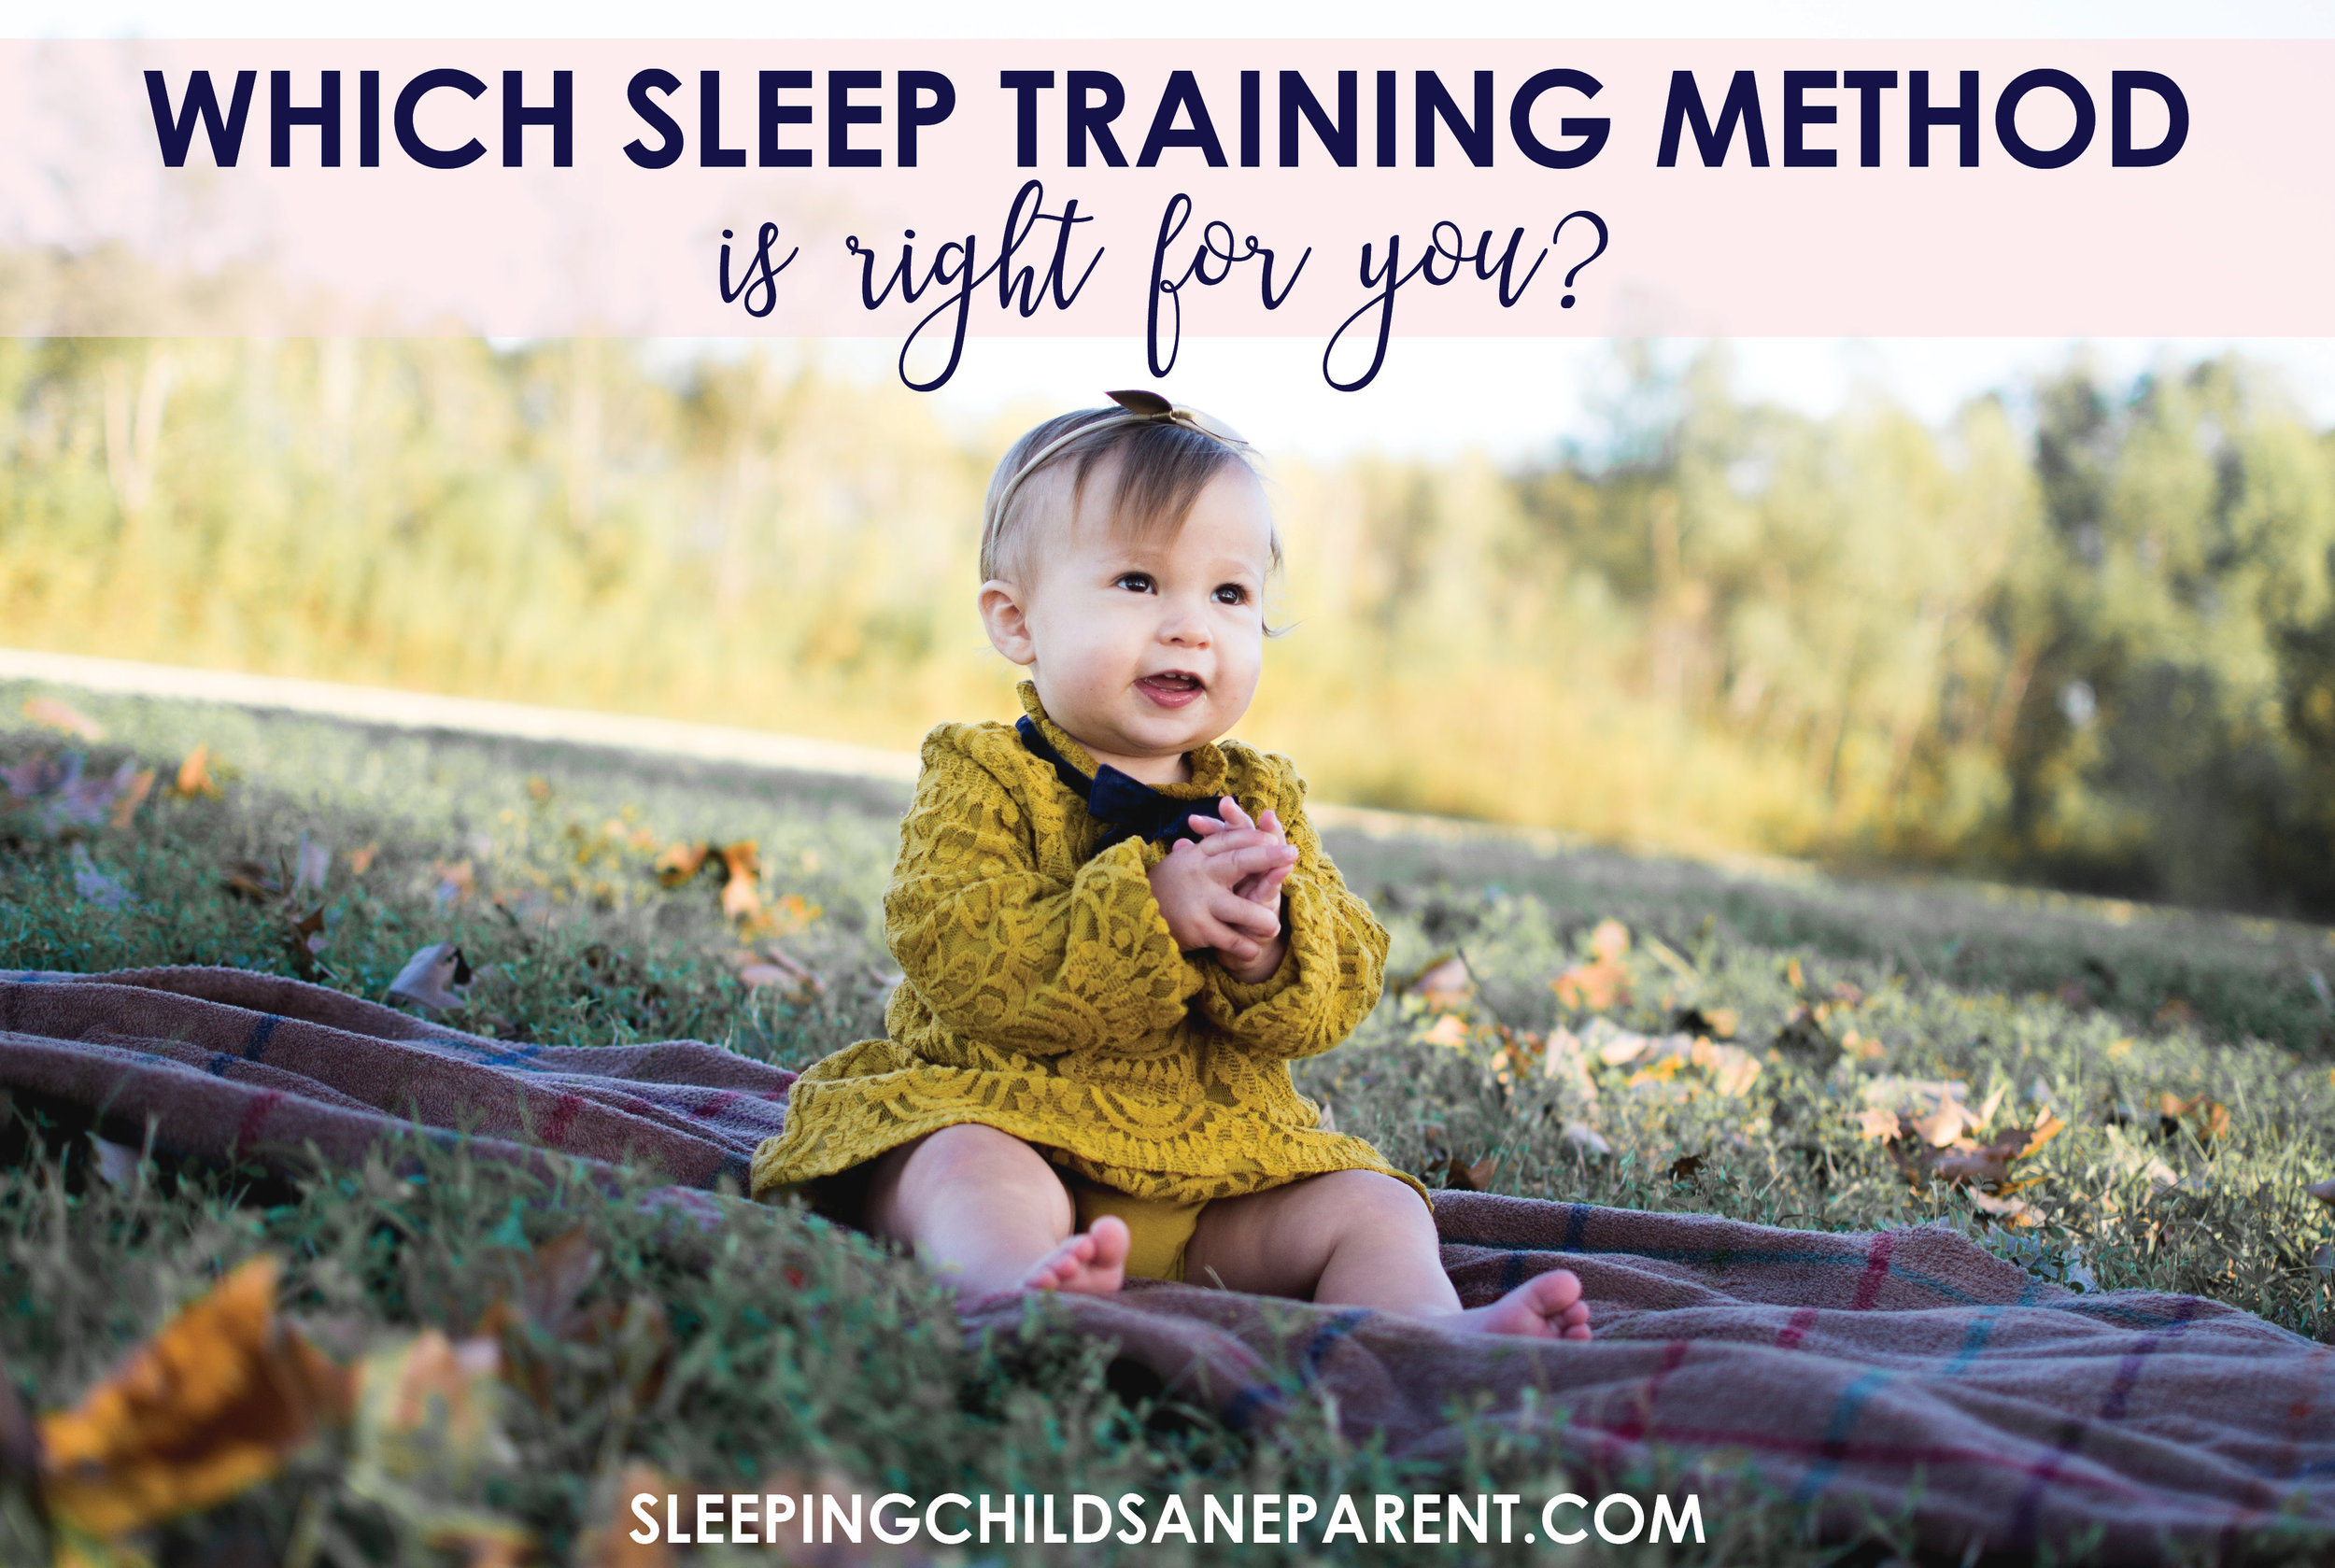 Feeling overwhelmed by all the sleep training options? Check out this post to figure out which one is the best fit for YOUR family.